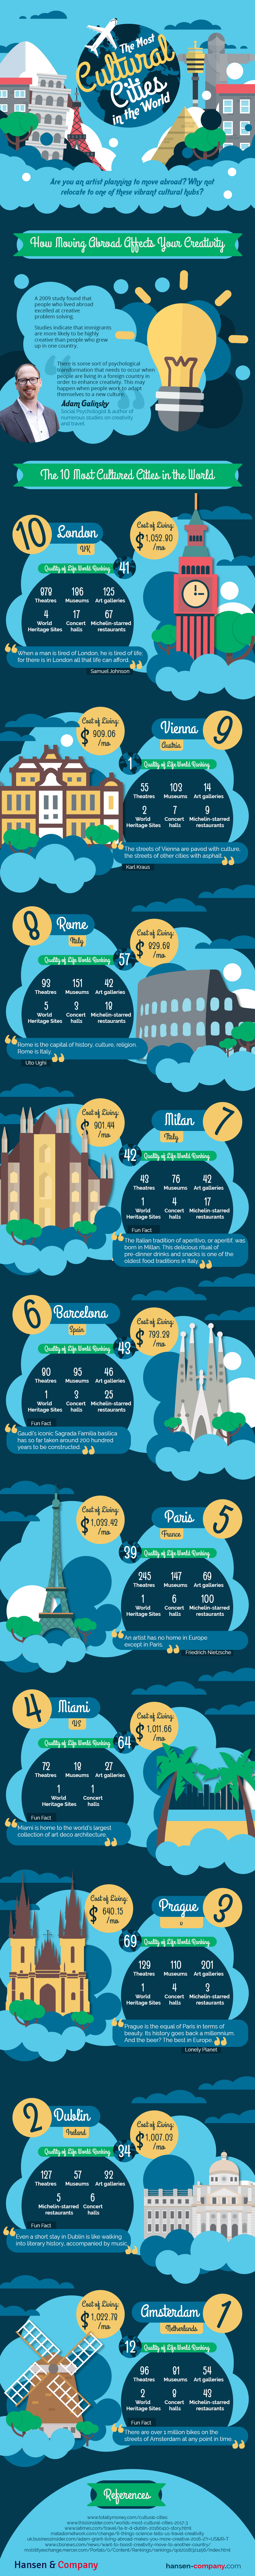 Infographic: The 10 most cultural cities in the world